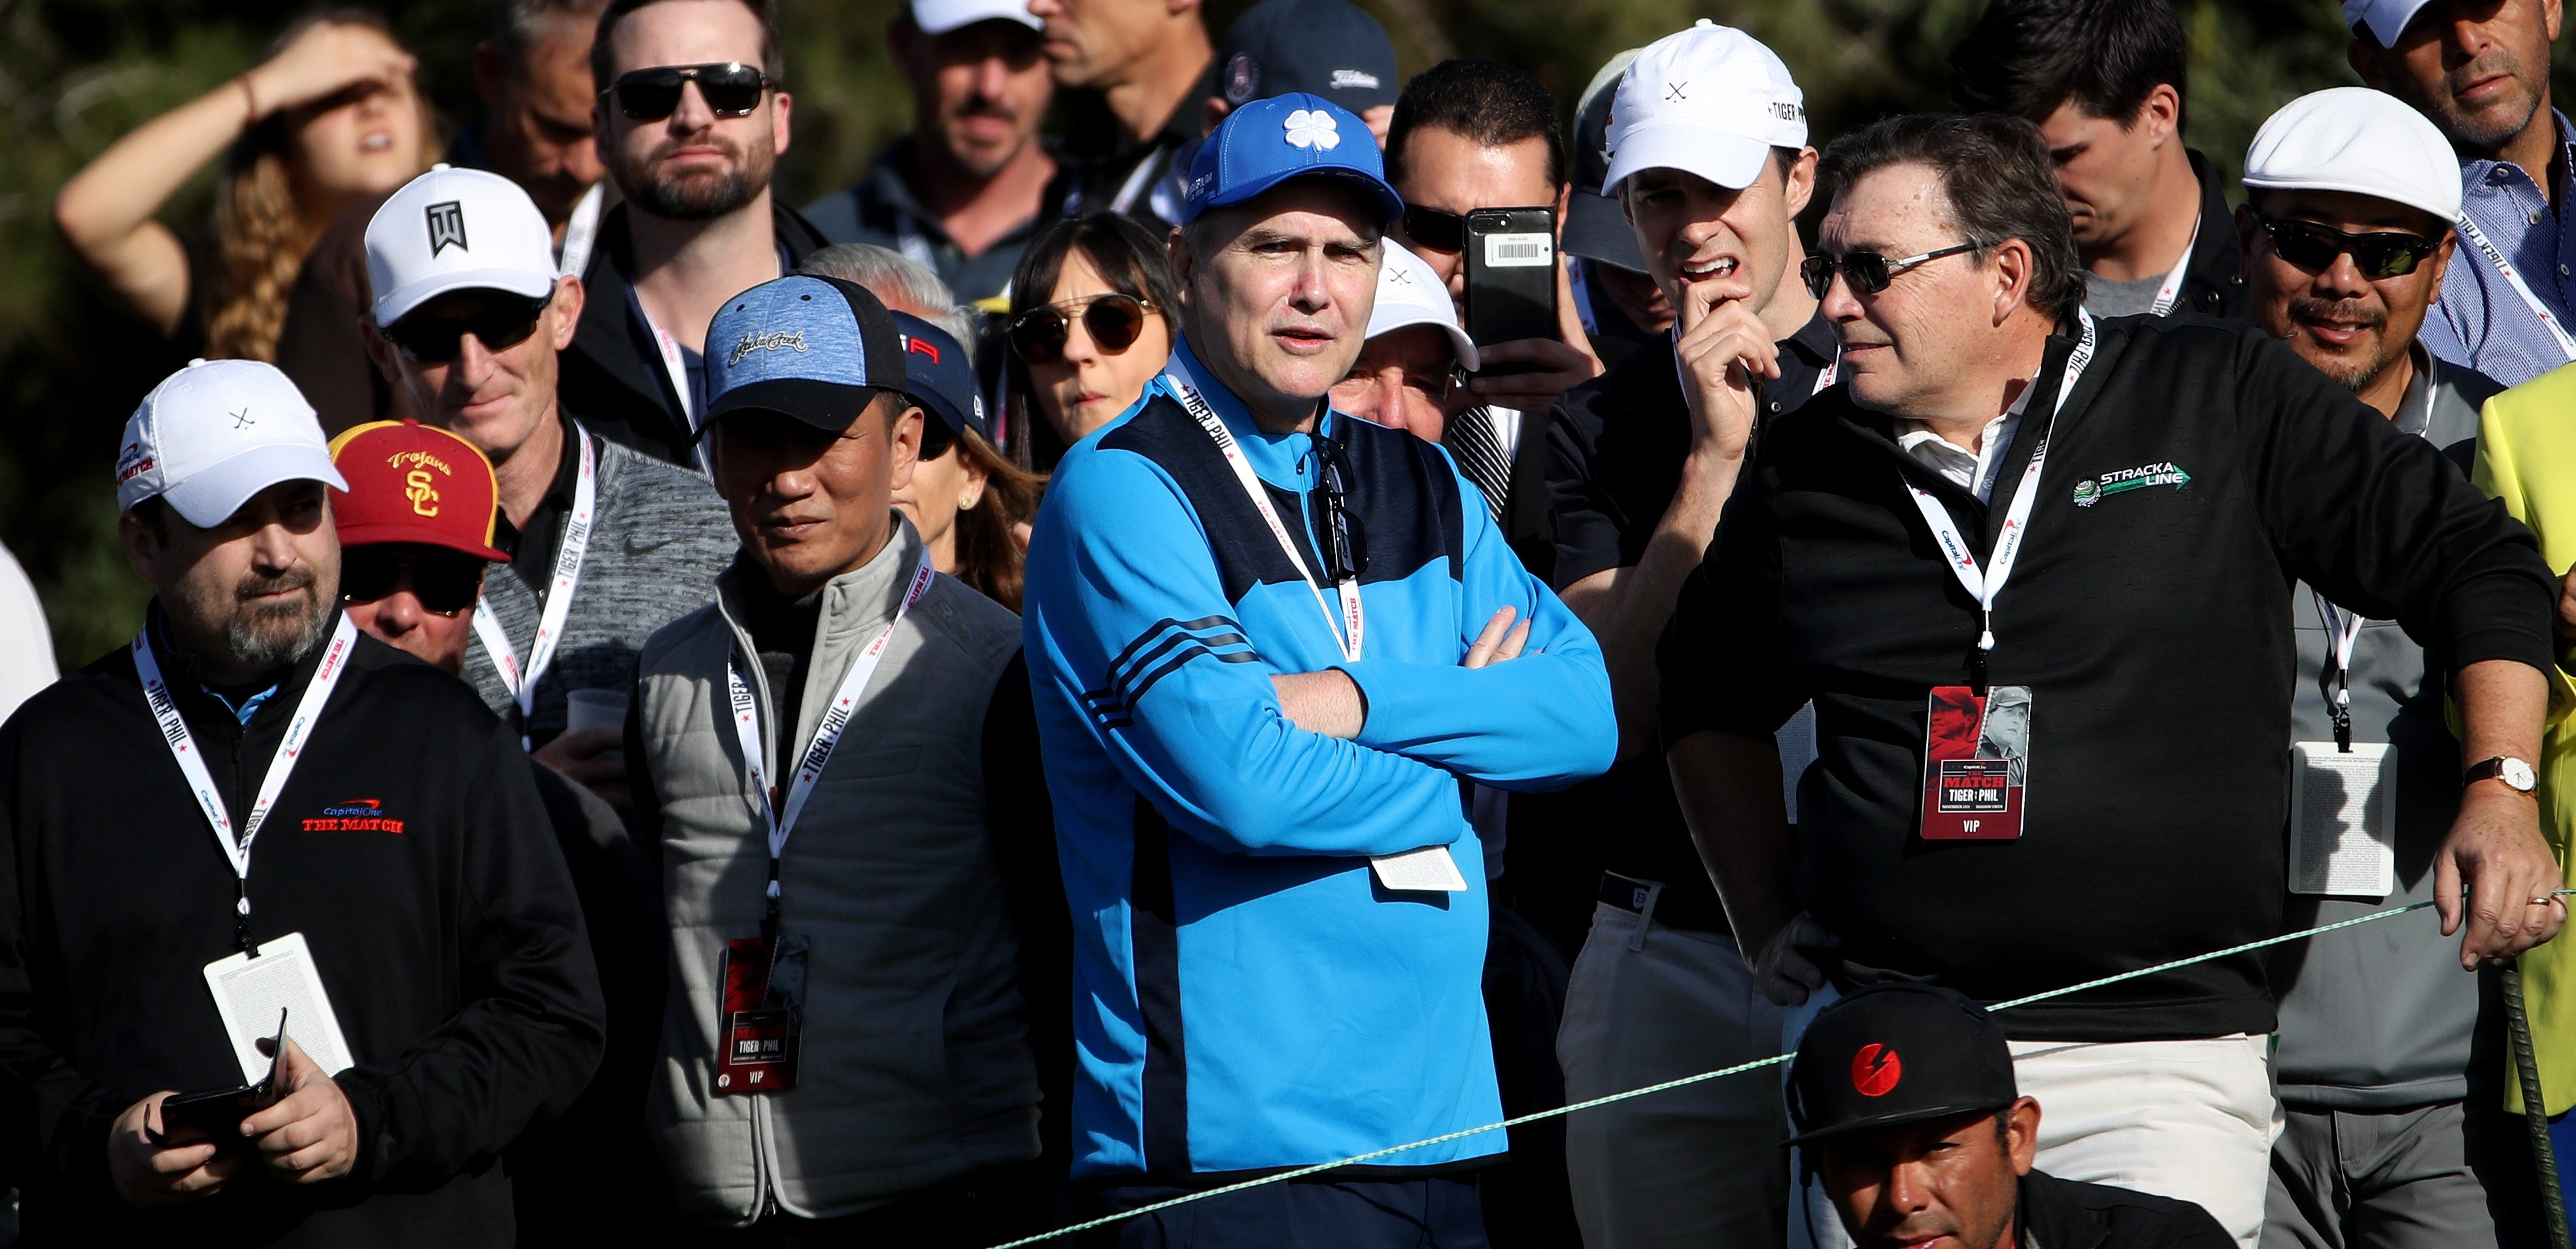 LAS VEGAS, NV - NOVEMBER 23: Comedian Norm Macdonald during The Match: Tiger vs Phil at Shadow Creek Golf Course on November 23, 2018 in Las Vegas, Nevada. (Photo by Christian Petersen/Getty Images for The Match)